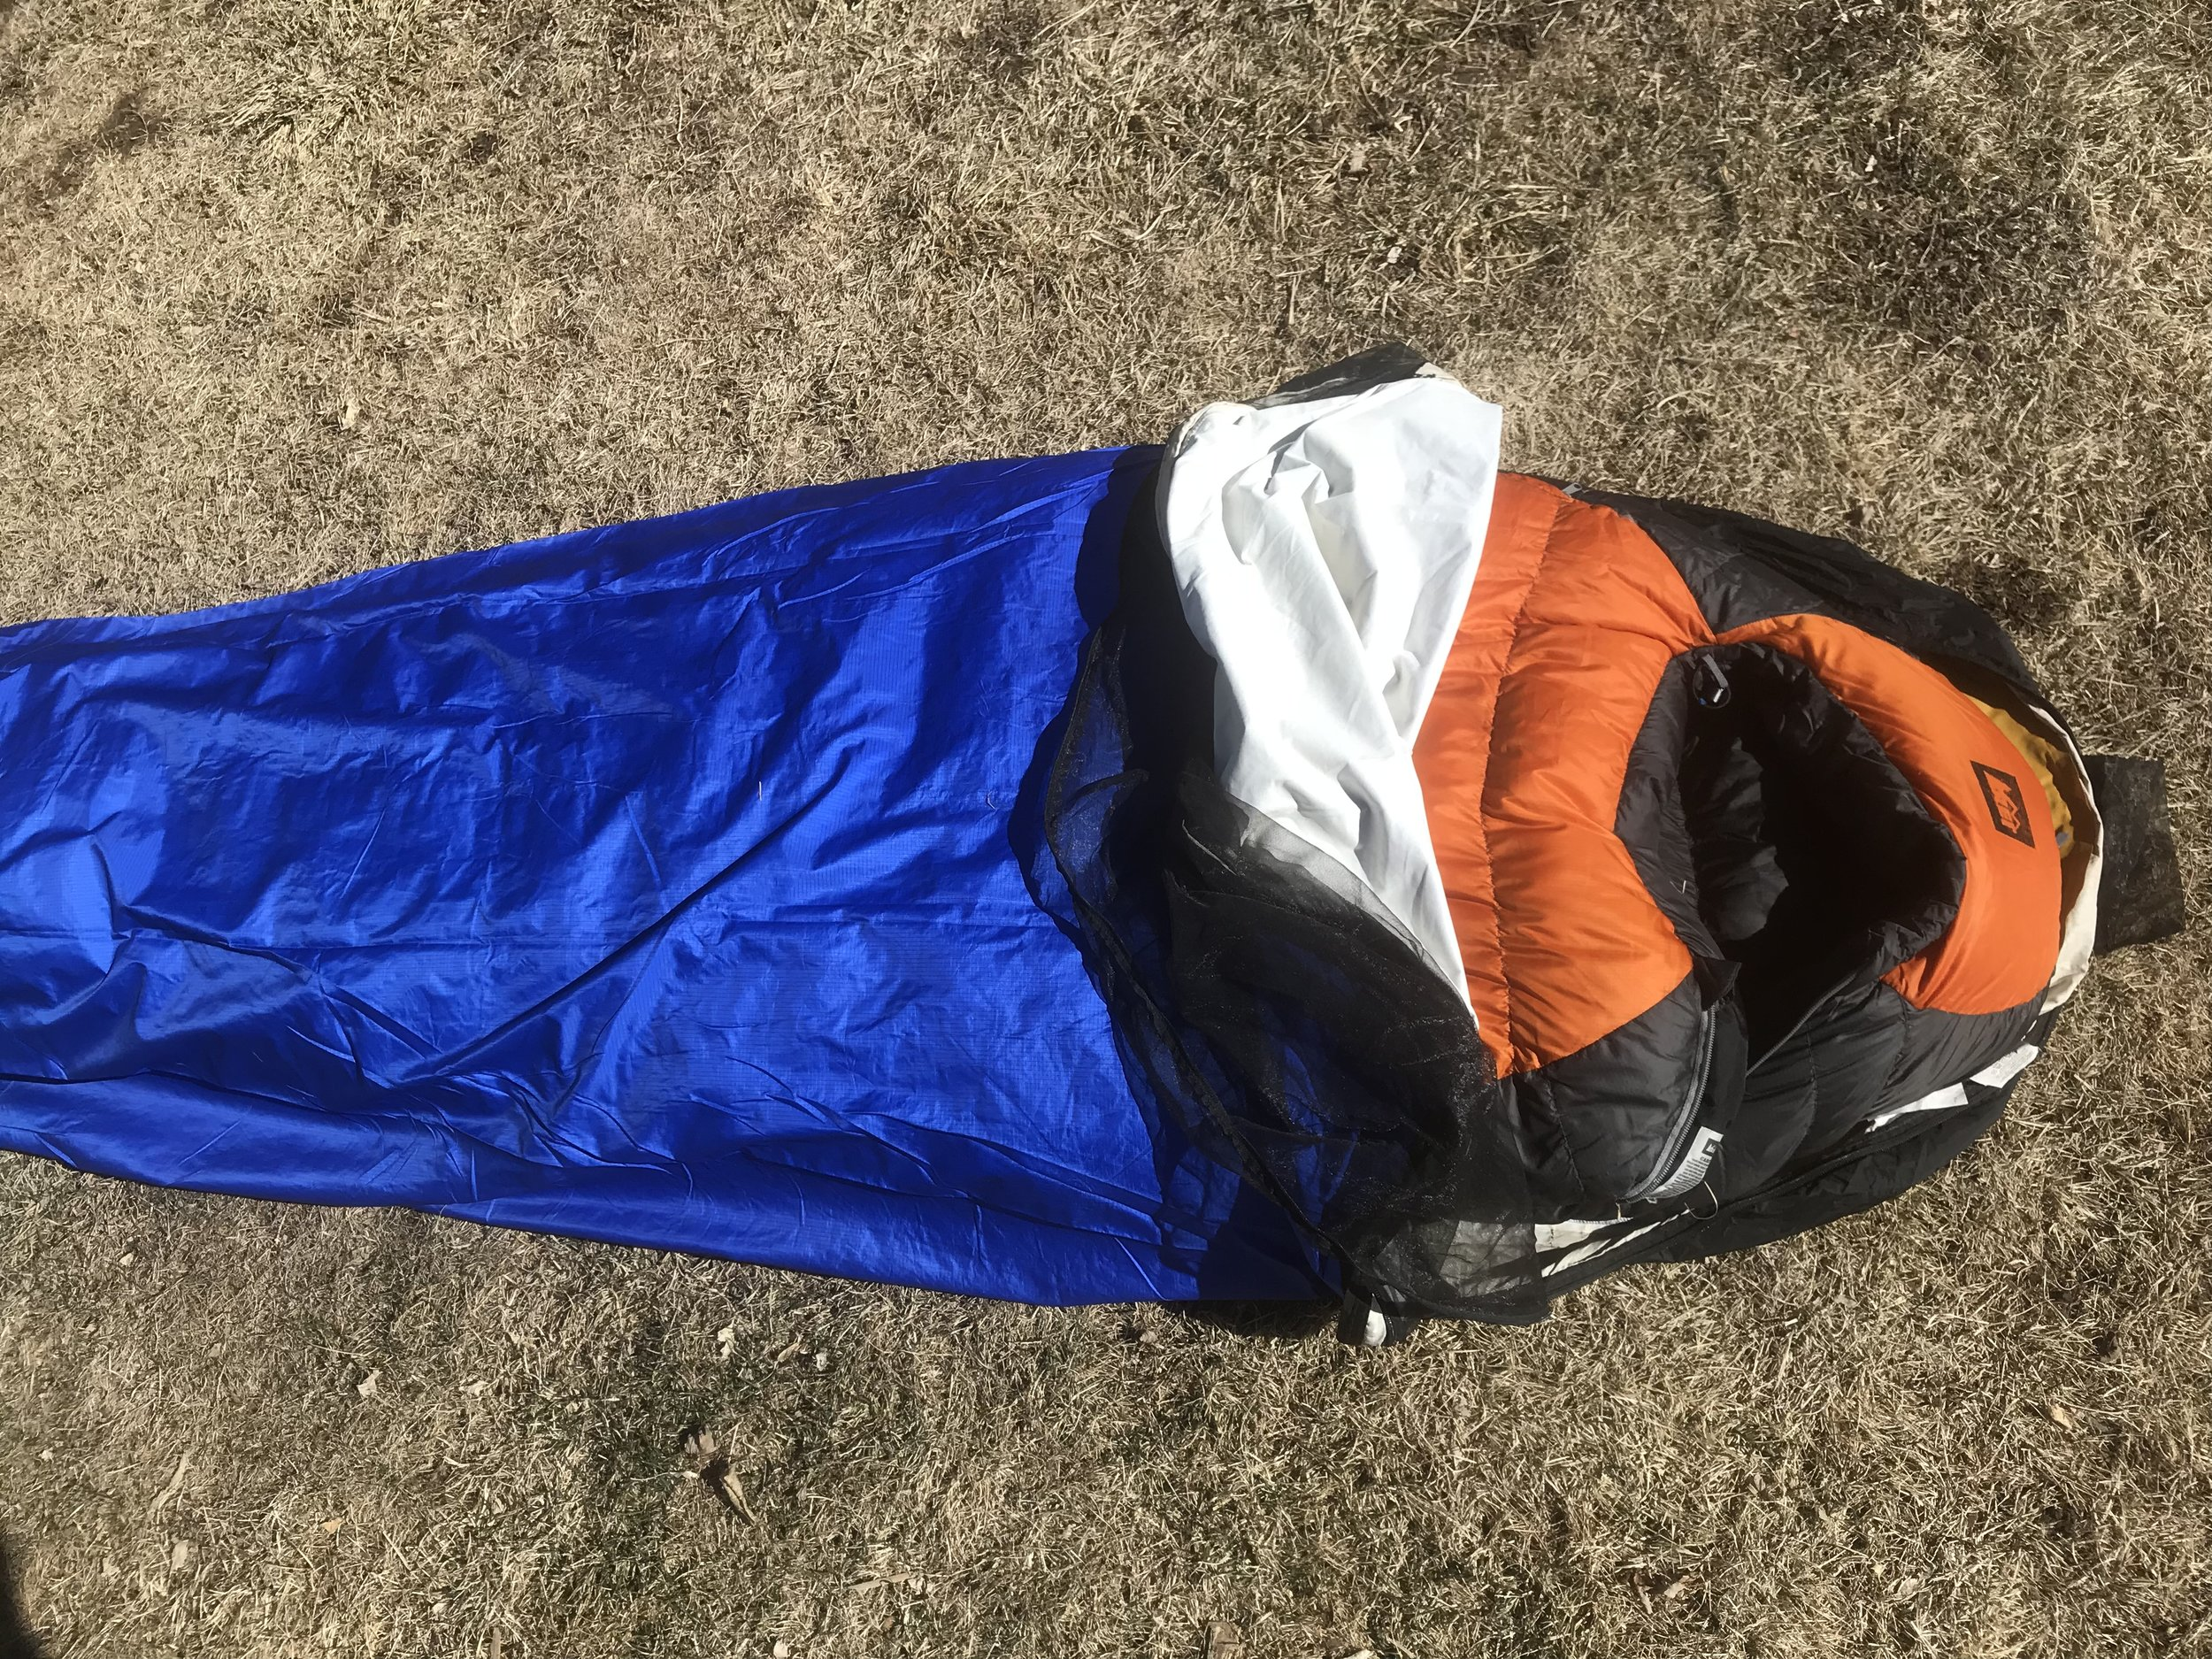 Sleeping accommodations for the PCT.